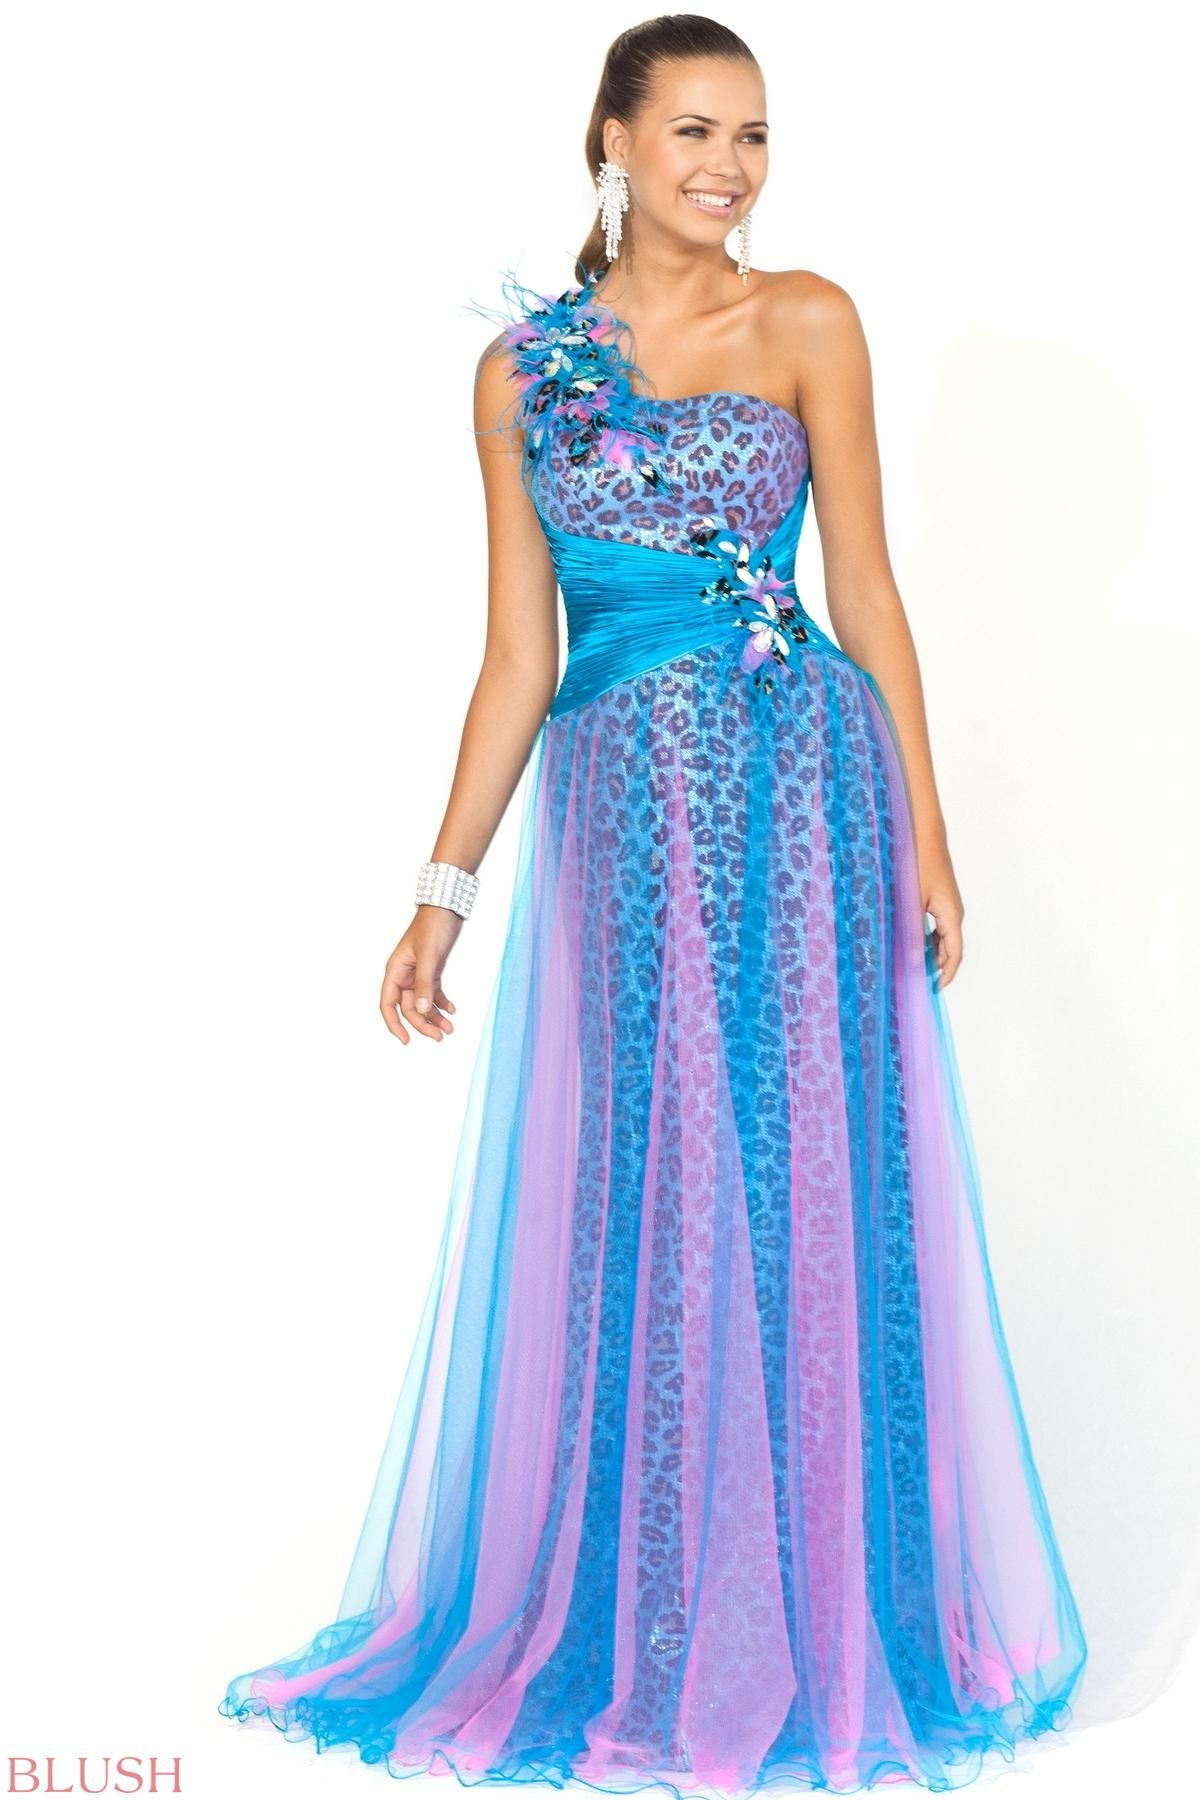 17 Best images about Prom dresses on Pinterest | Long prom dresses ...